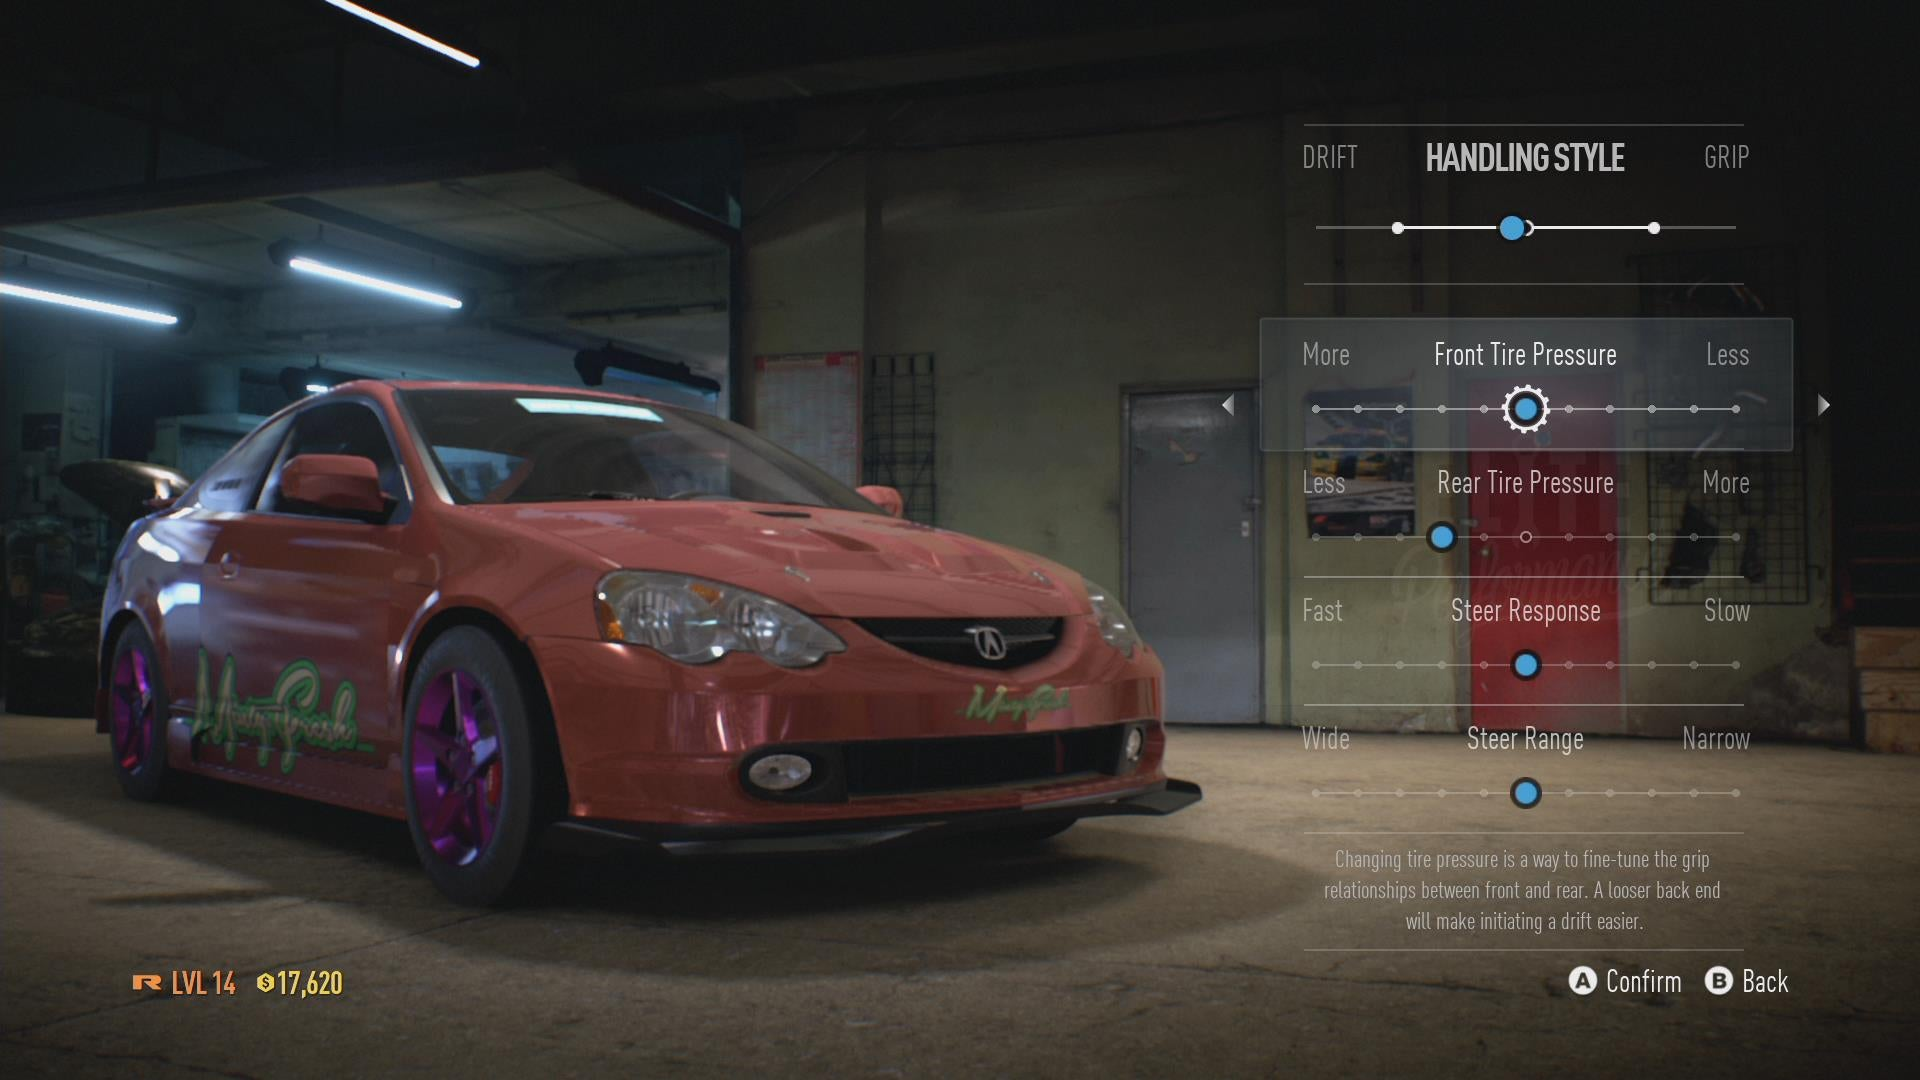 Frame Rate Stutters Make Racing My Least Favourite Part Of The New Need For Speed